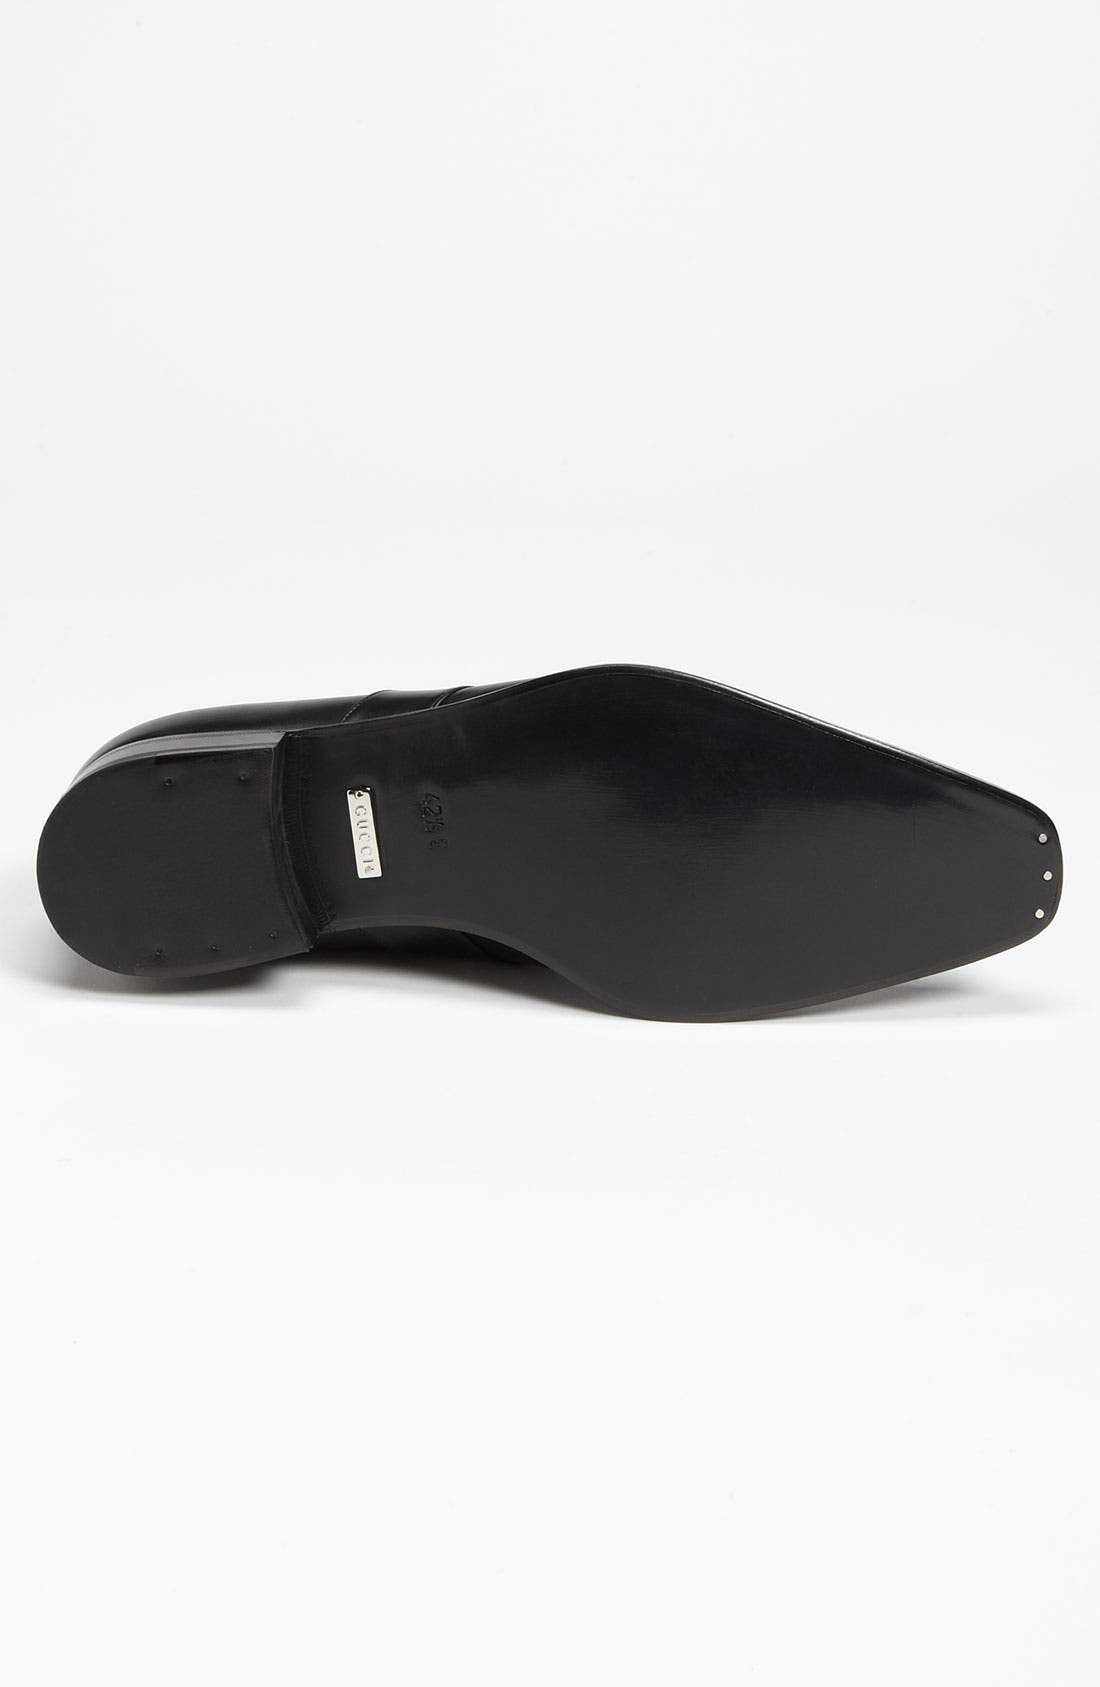 GUCCI,                             'Double G' Loafer,                             Alternate thumbnail 6, color,                             005